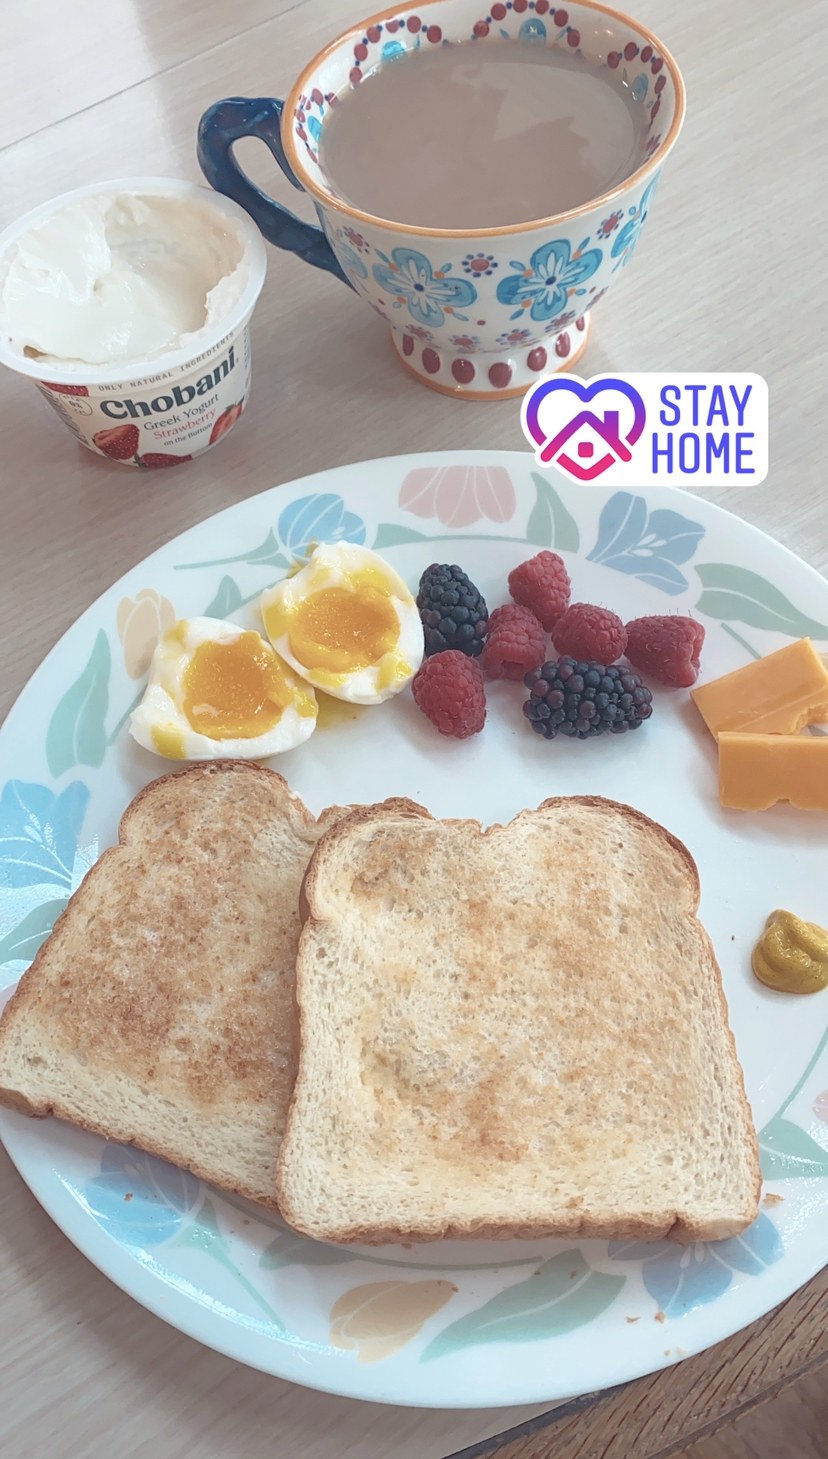 two halves of one boiled egg on a plate with plain white toast, berries, and slices of cheese